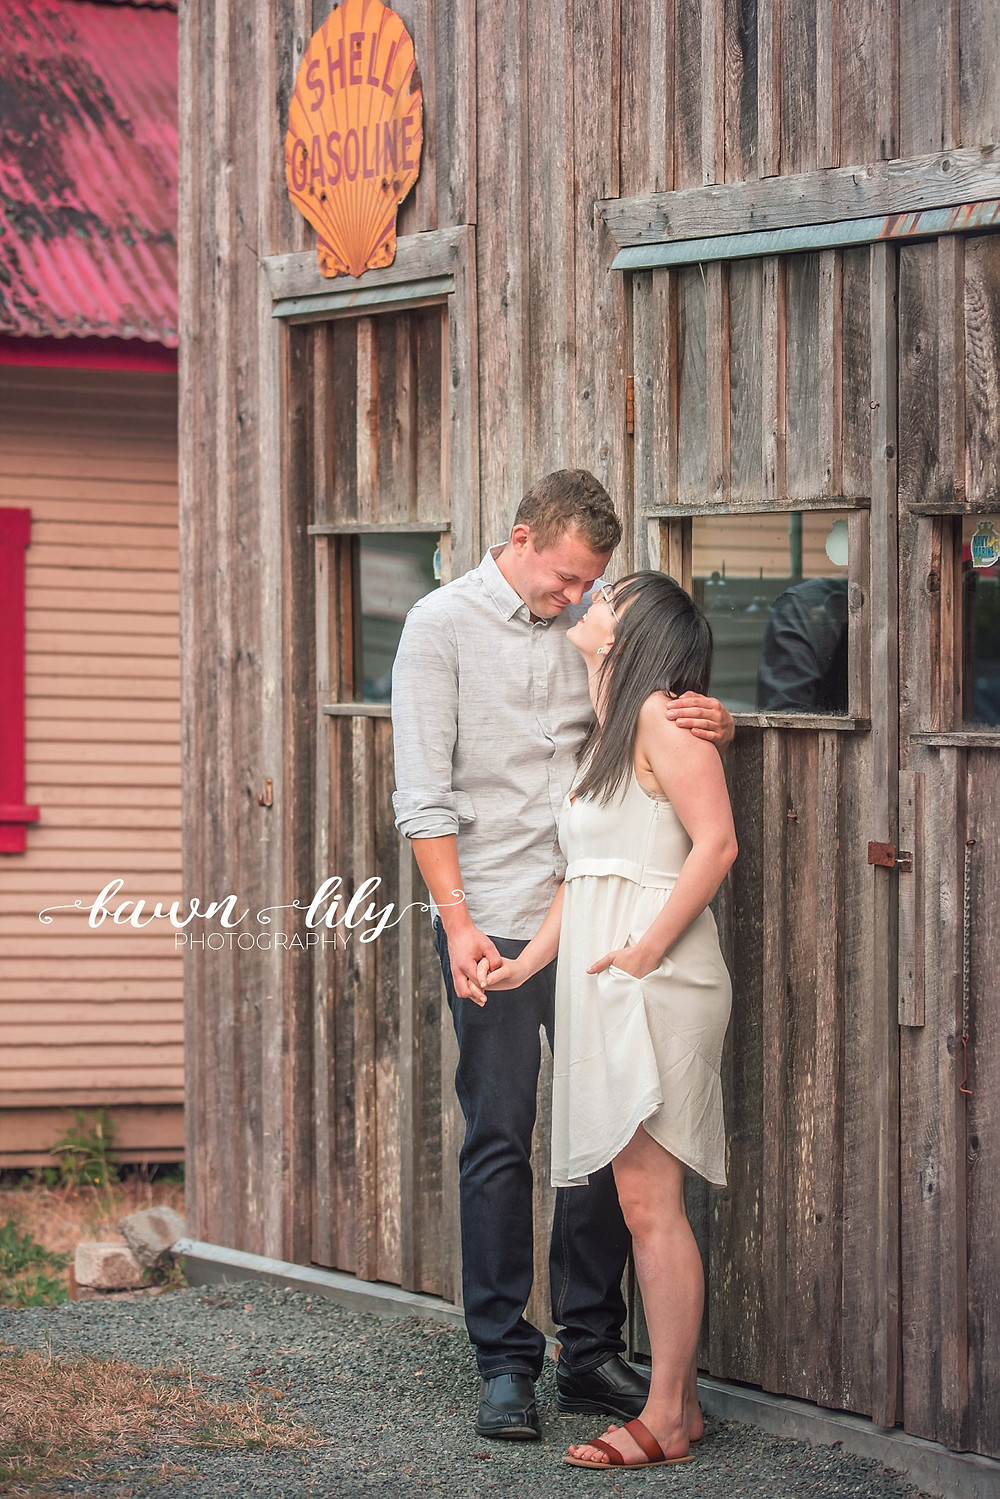 Couple Photo at Heritage Acres, Victoria BC couple photographer, Fawn Lily Photography, Sidney BC Family Photographer